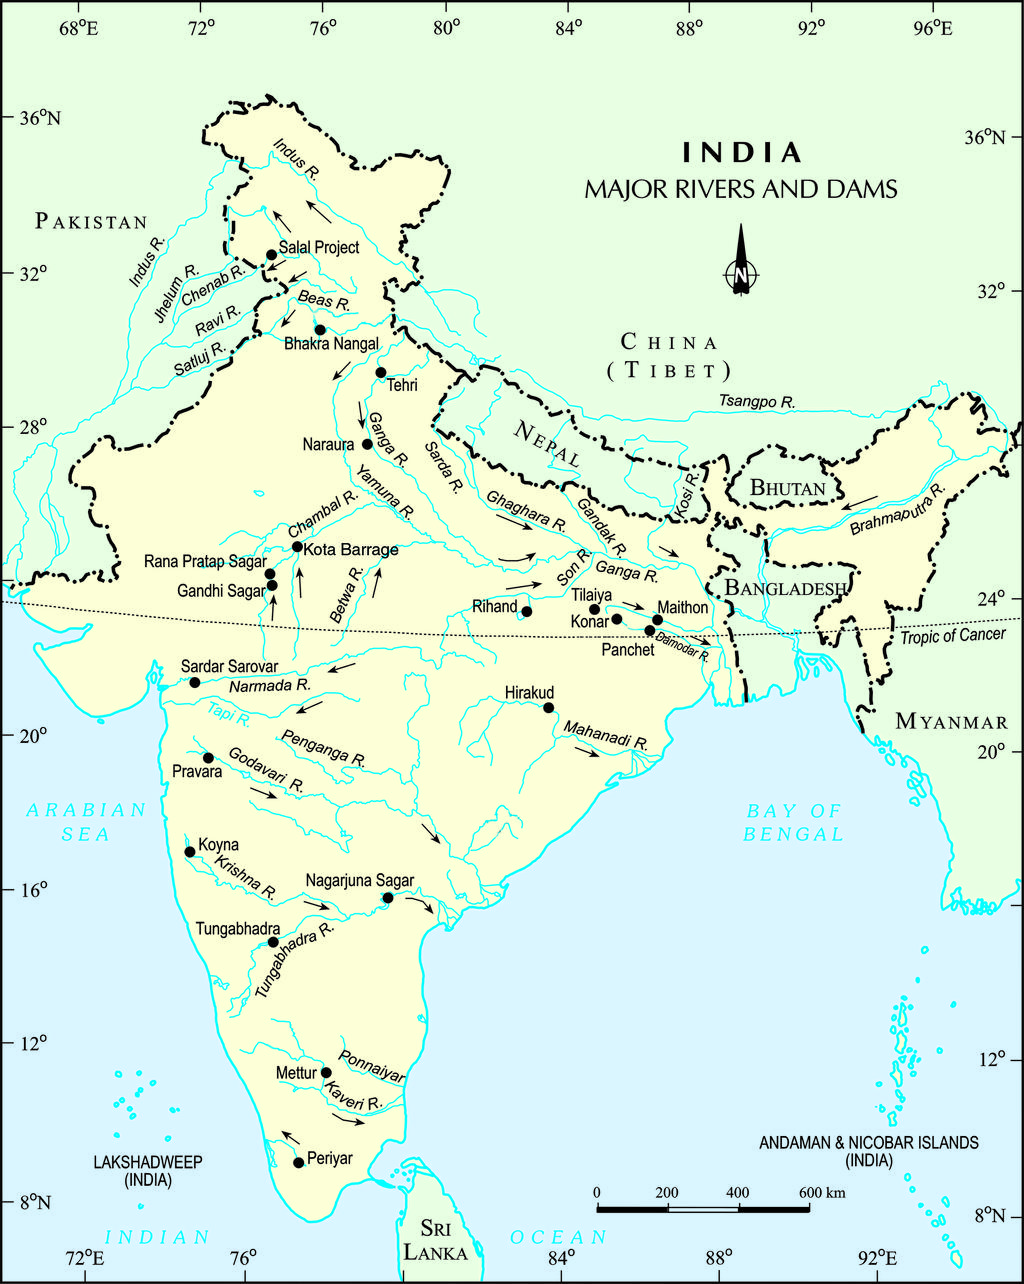 Major Rivers and Dam in India